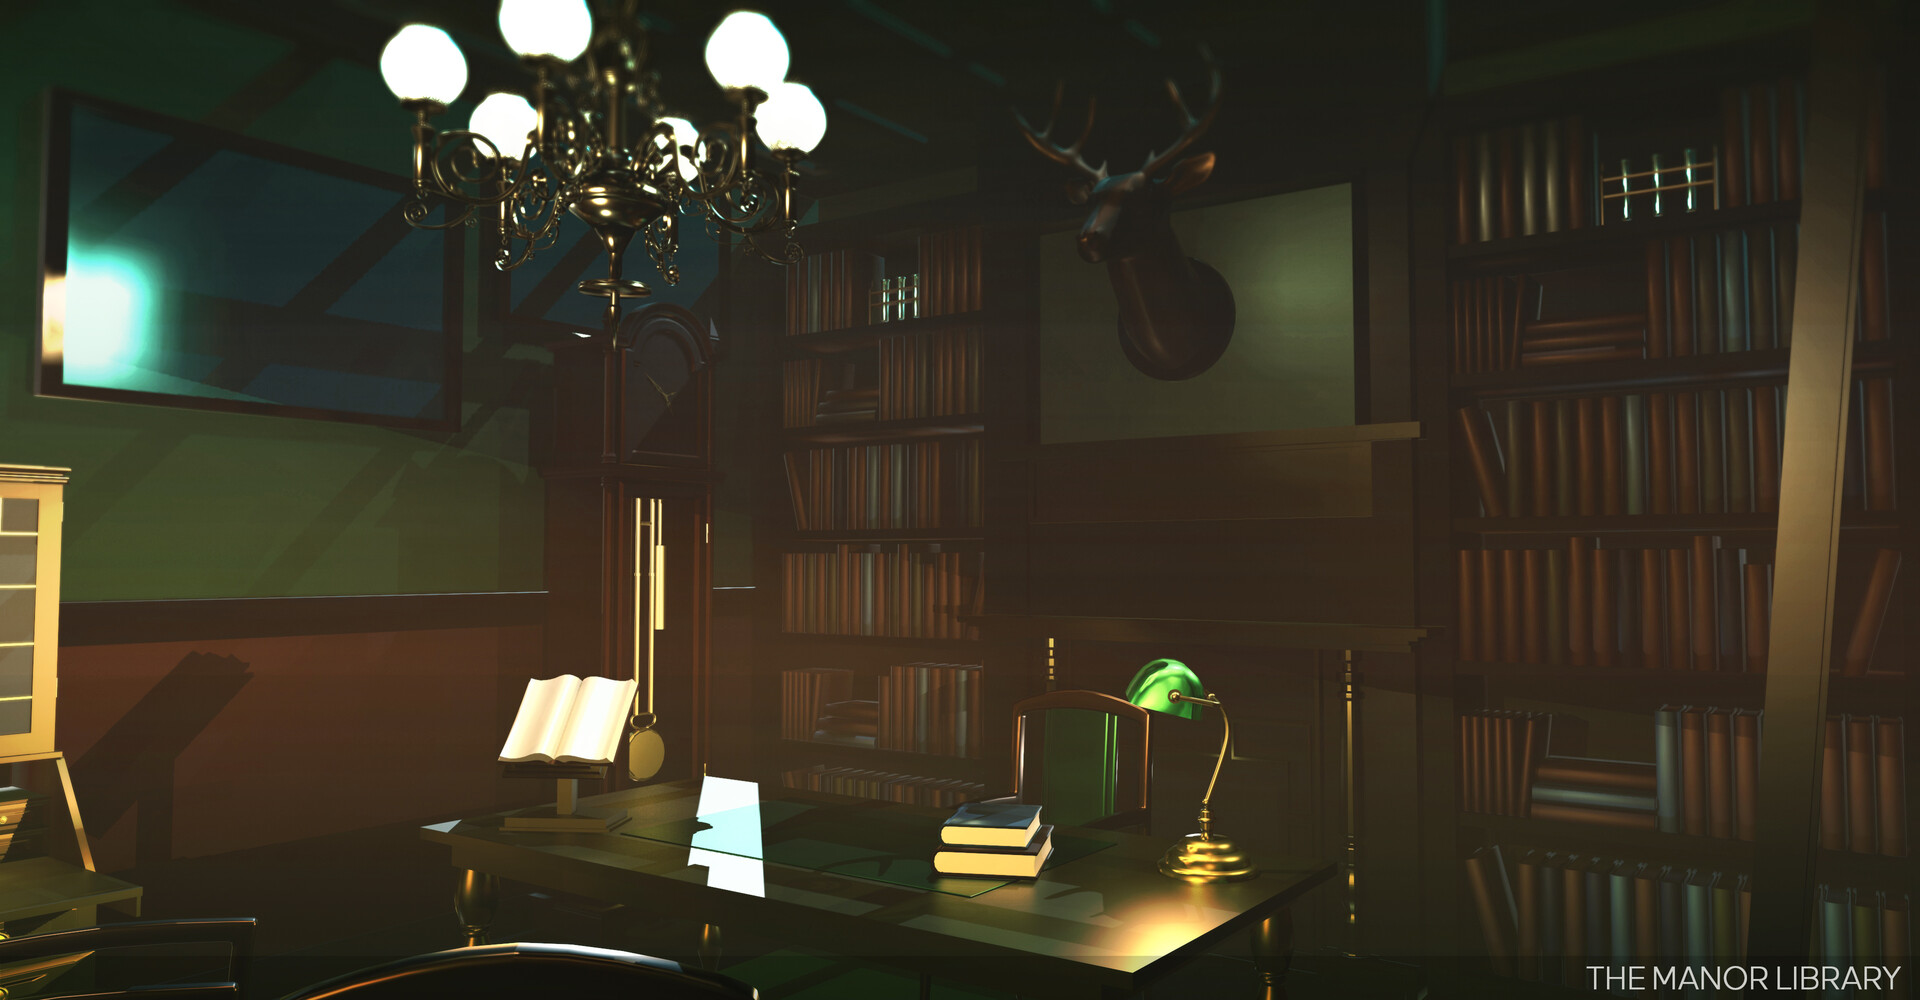 The_Manor_Library_Render_04